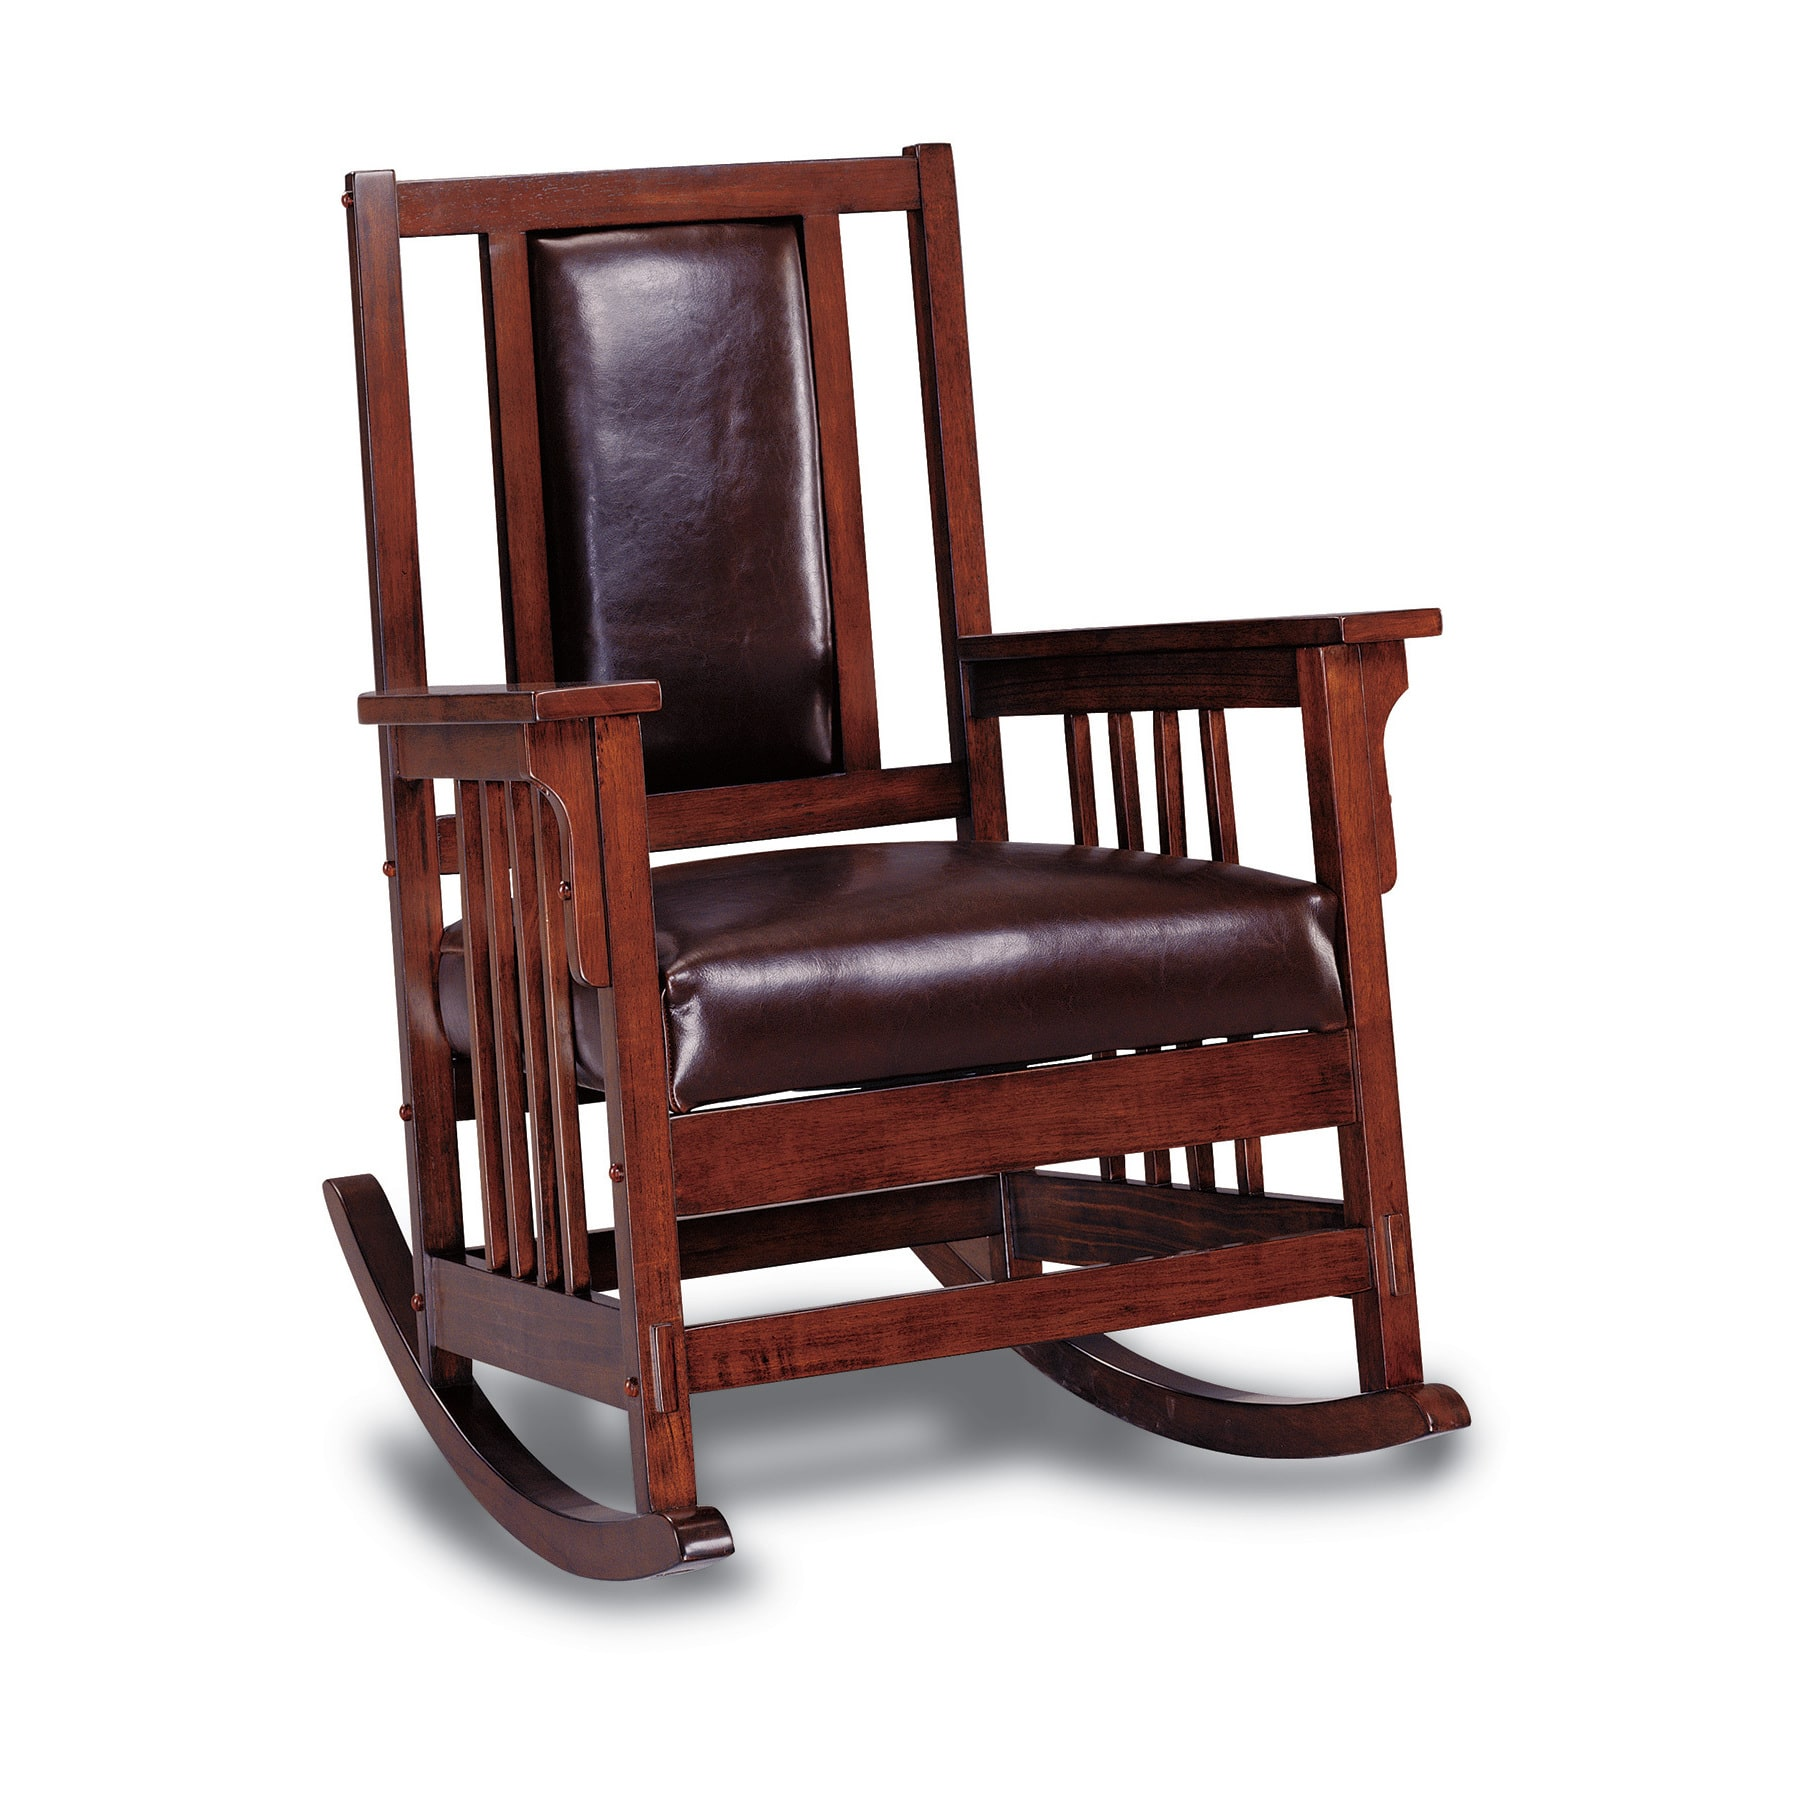 Indoor Rocking Chair Solid Wood Leather Padded Rocker Glider Rustic ...